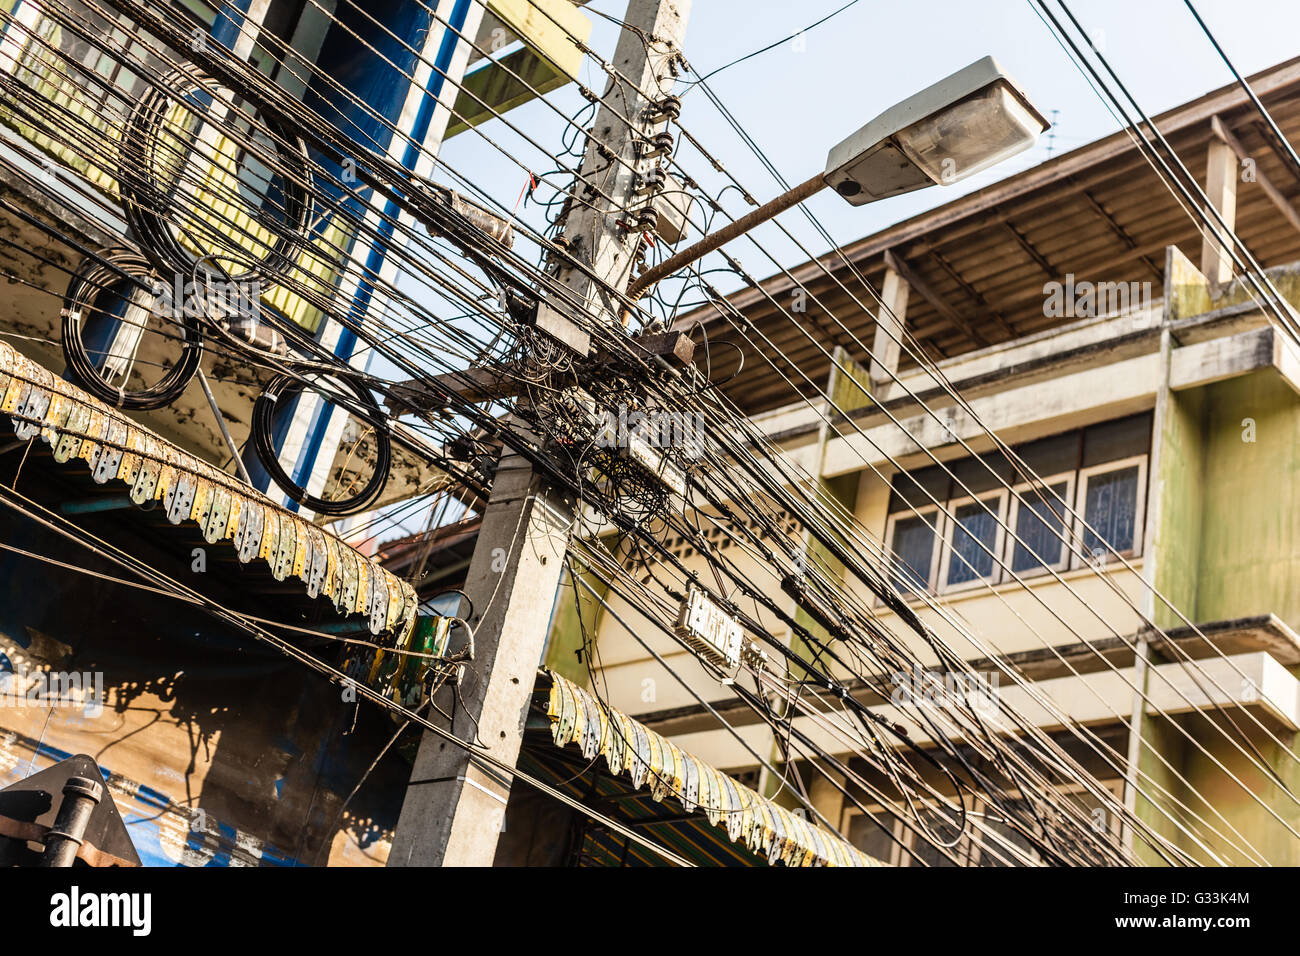 Unsafe Electrical Wiring Stock Photos Free Photography Electric Meter Messy Installation Tangled And Cables In Bangkok City Image